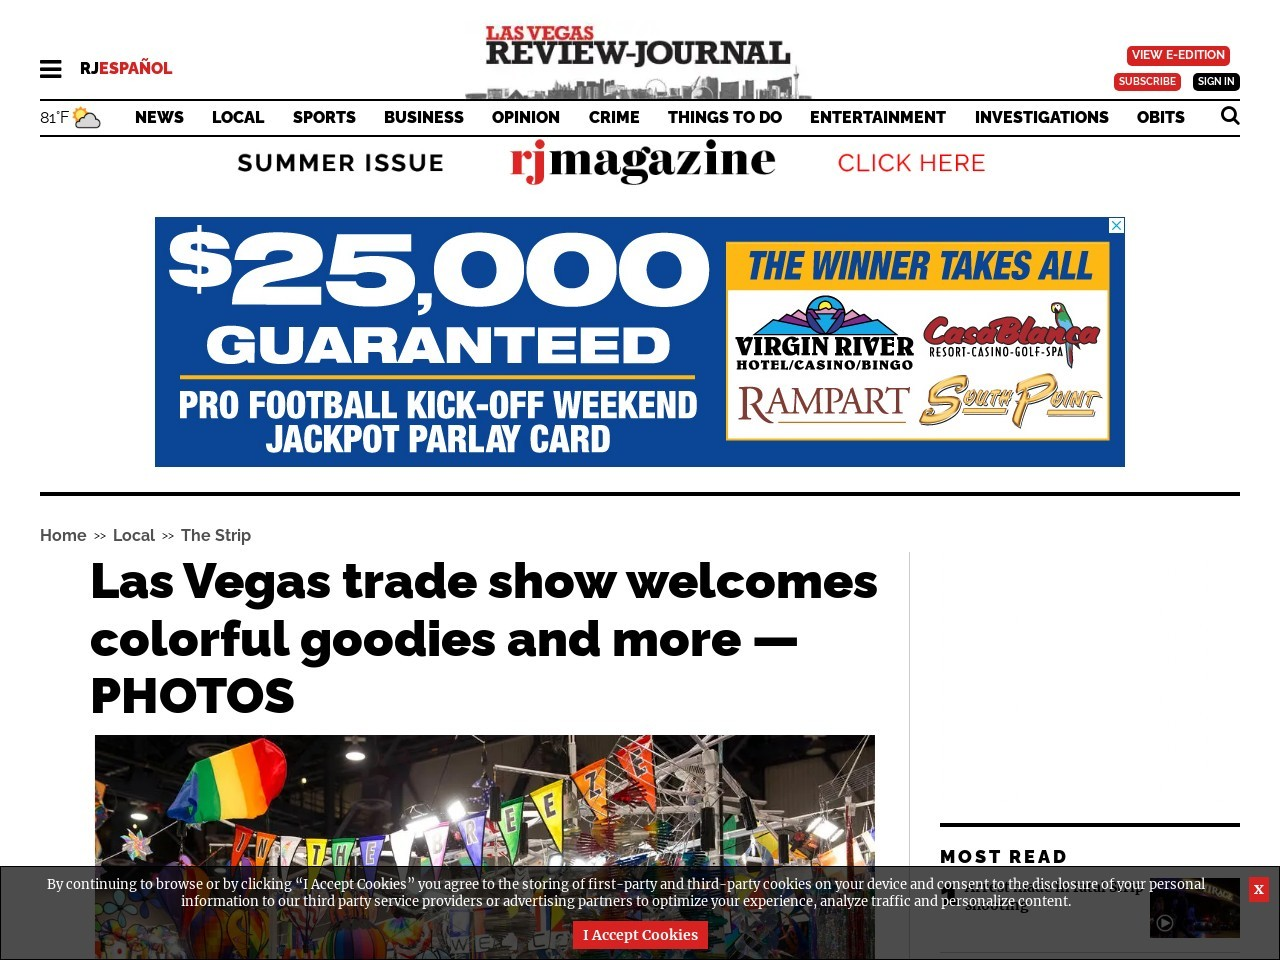 Las Vegas trade show welcomes colorful goodies and more — PHOTOS